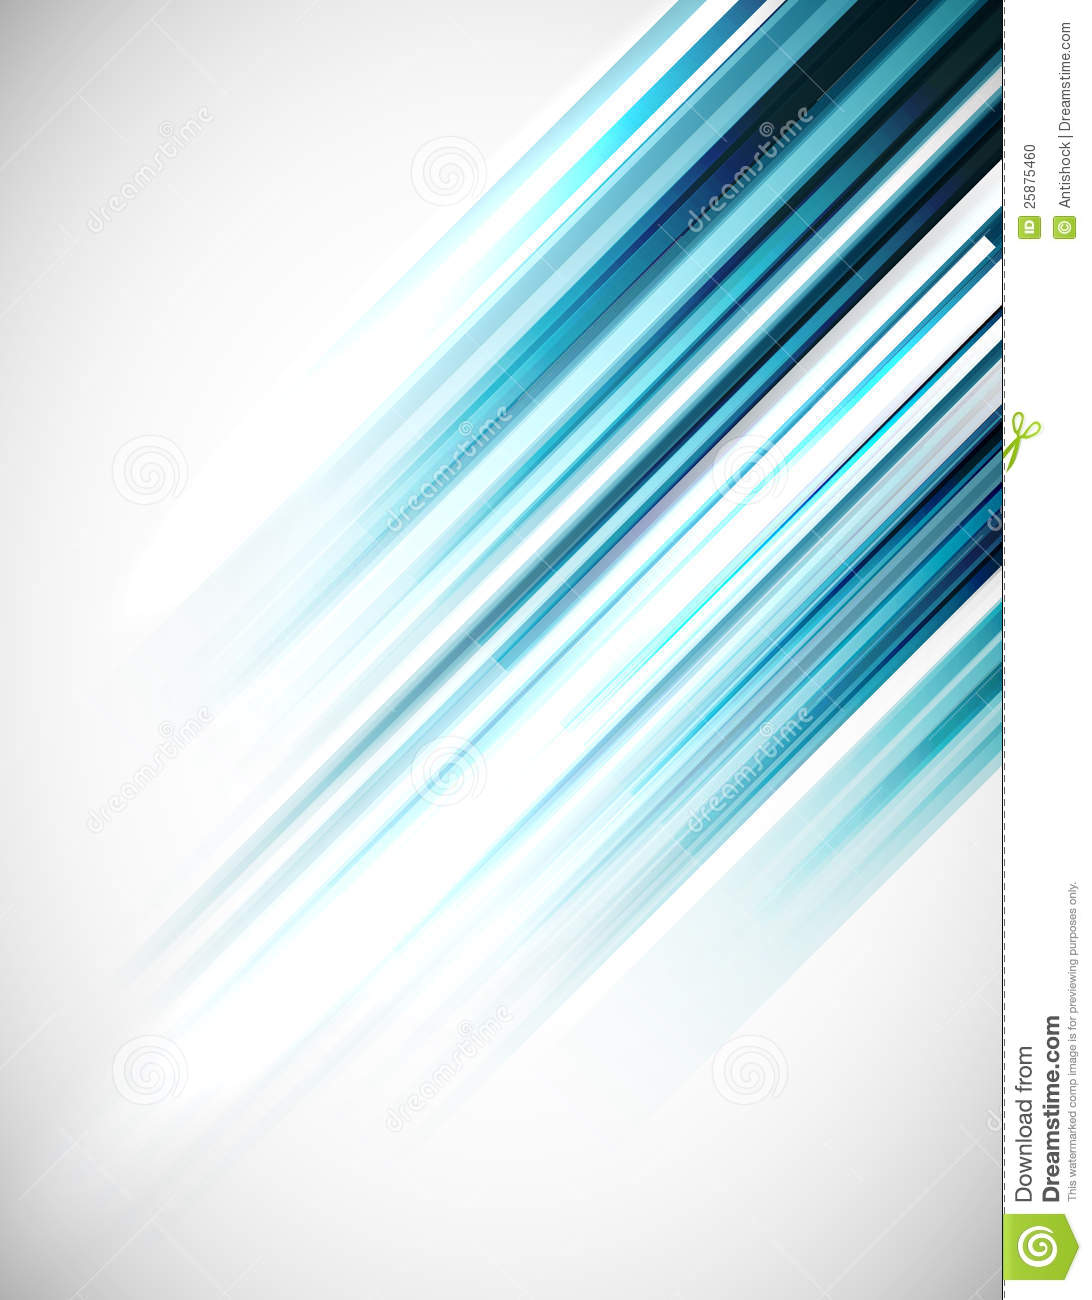 Straight Line Art Vector : Straight lines vector abstract background stock